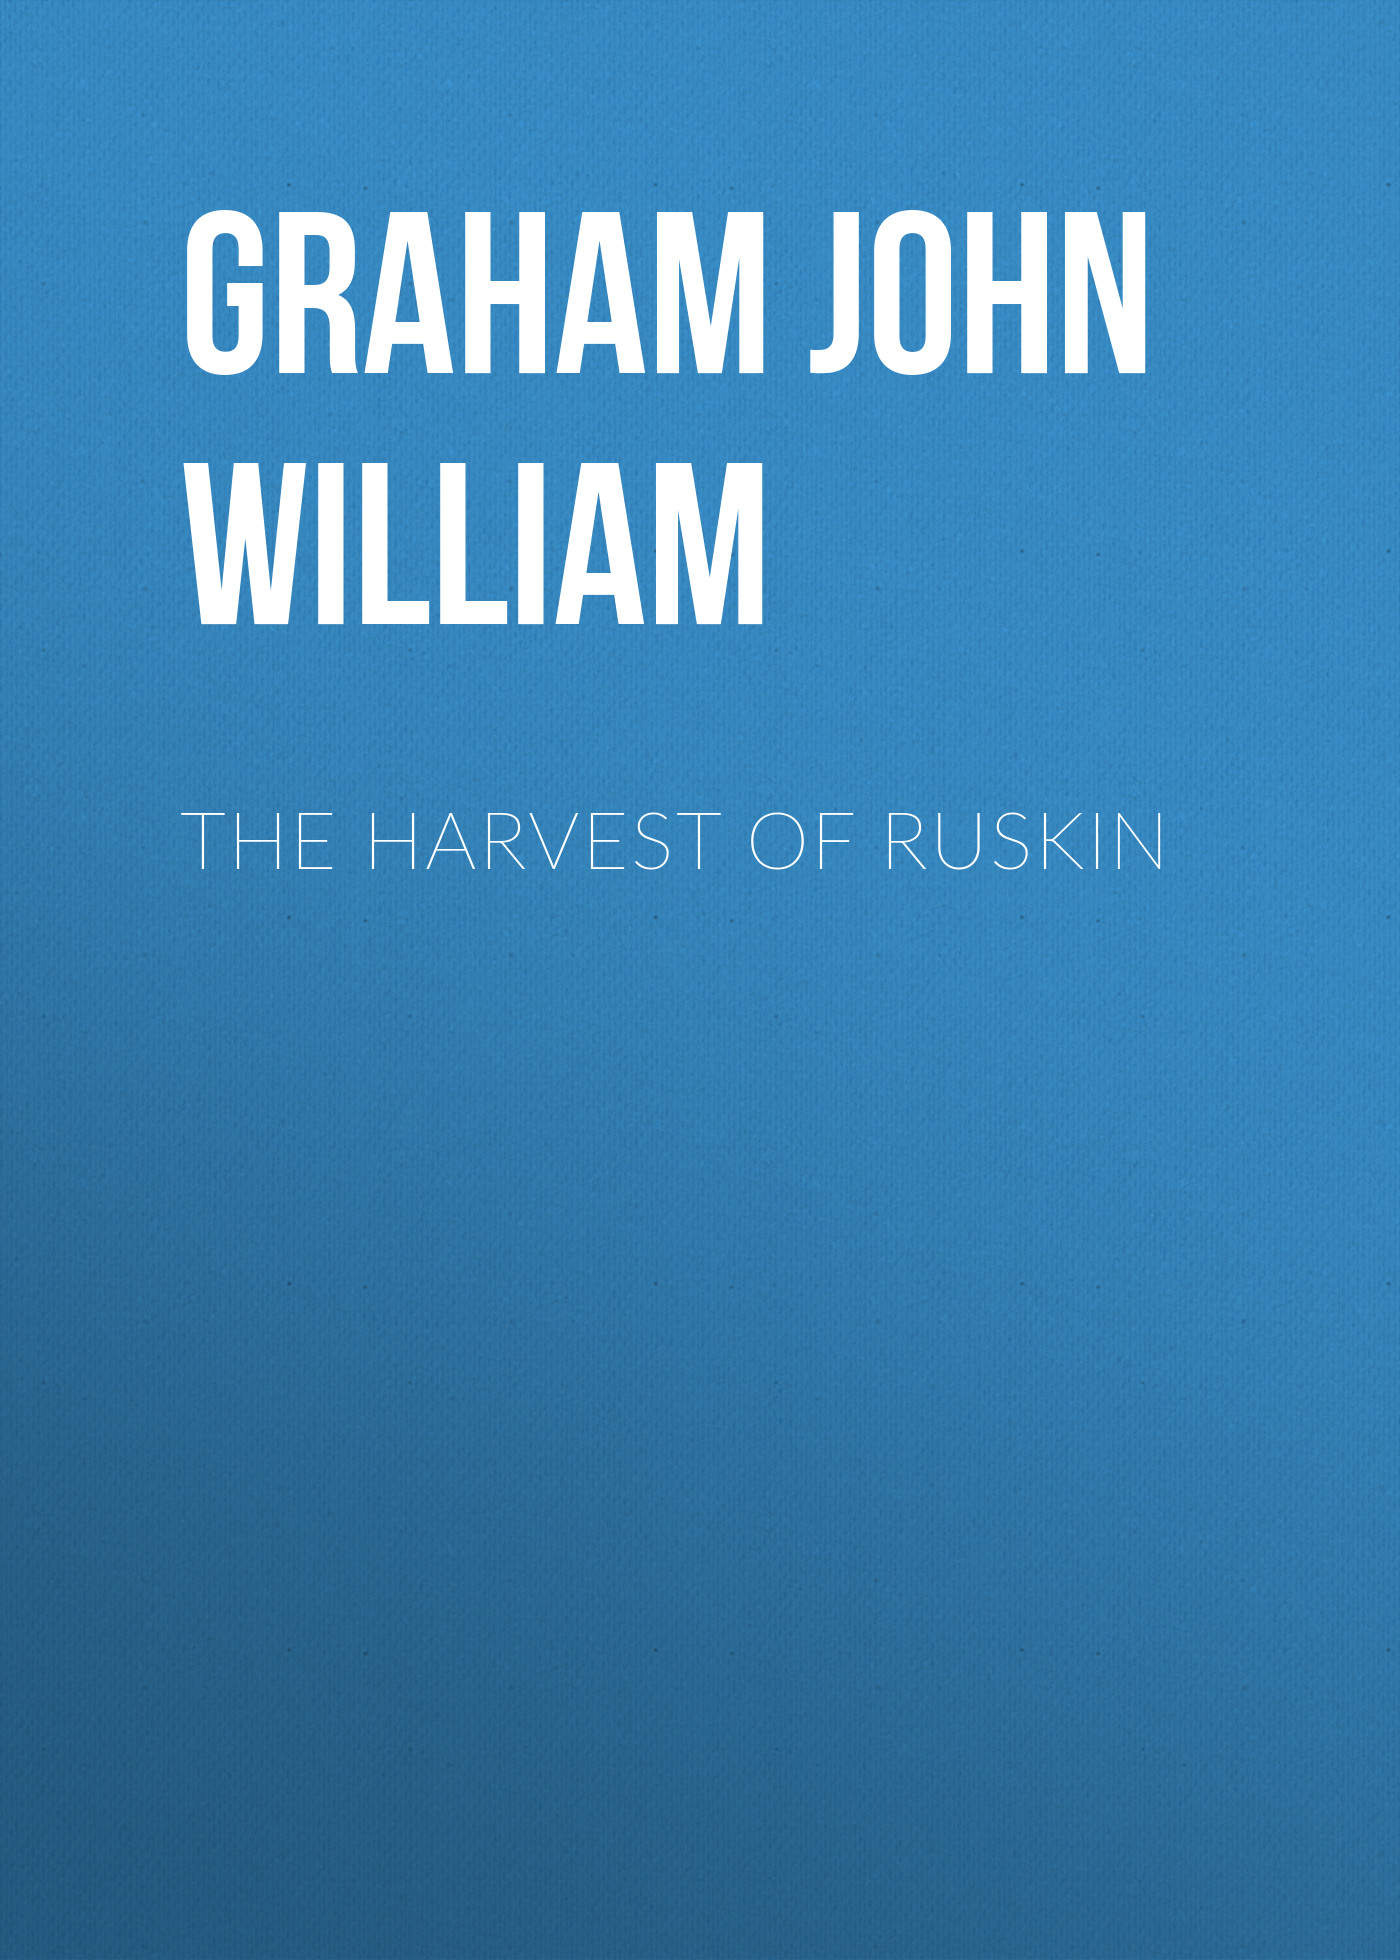 лучшая цена Graham John William The Harvest of Ruskin